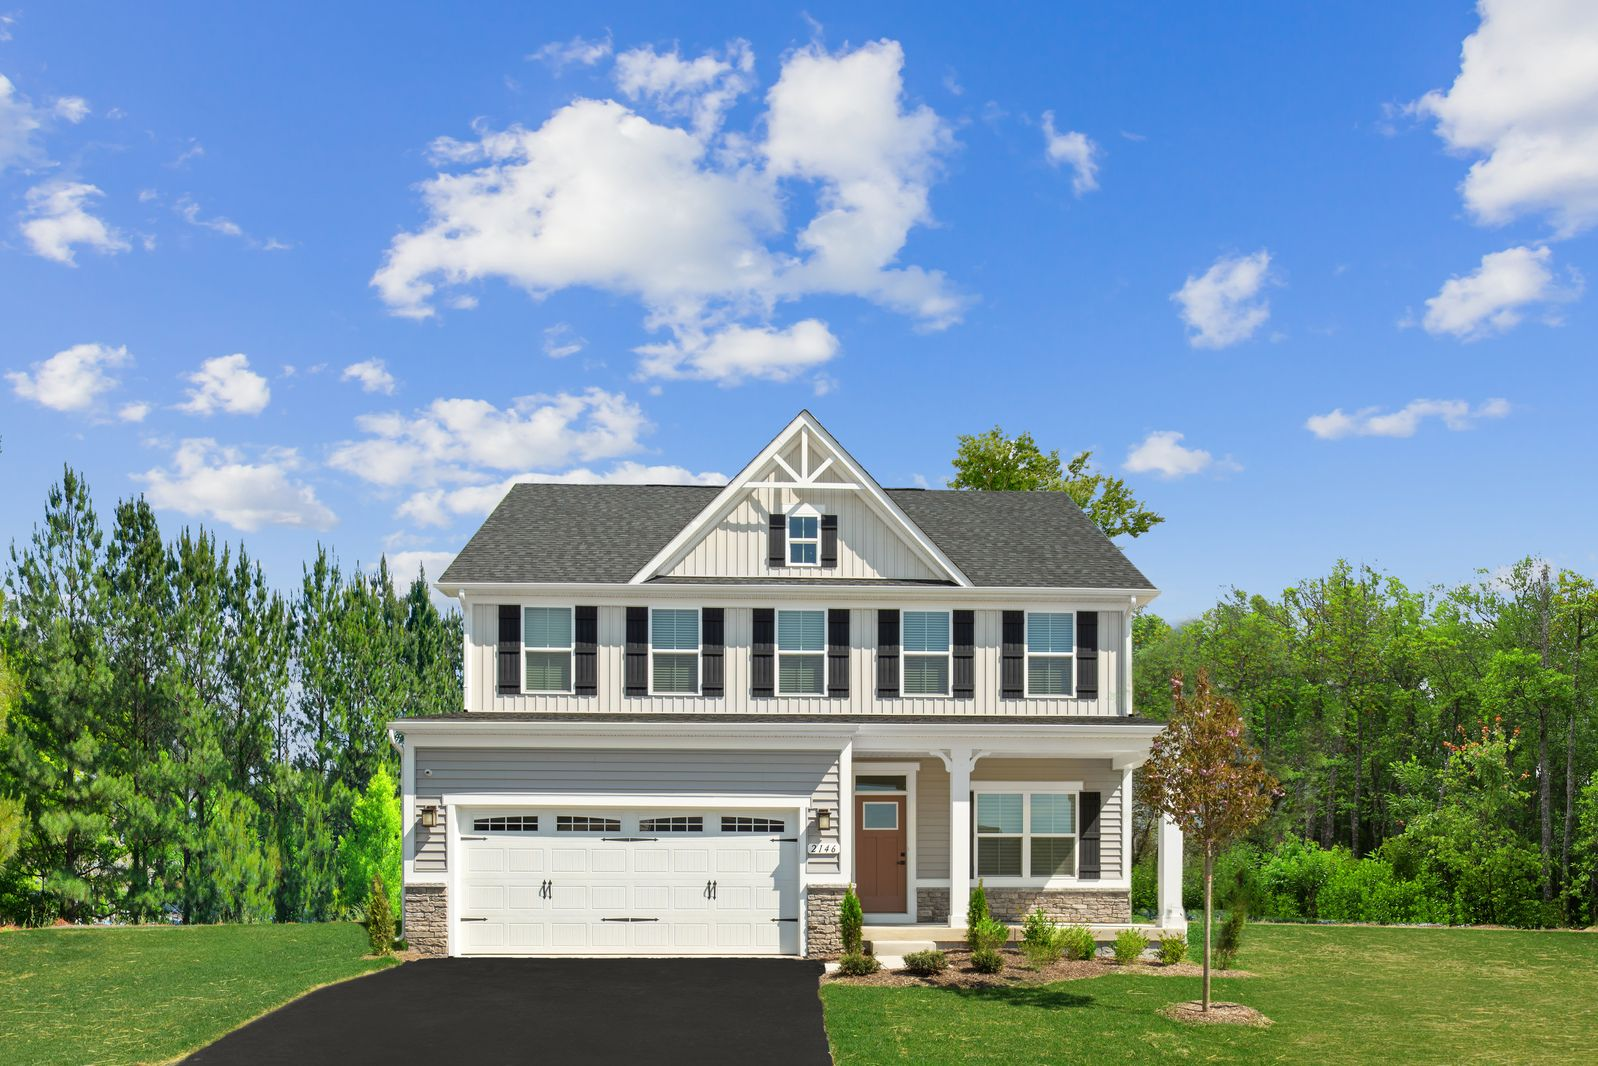 Welcome Home to Fayette Farms:The only new home community in West Allegheny Schools with pool and clubhouse. Established community only 10 minutes from Robinson.Click here to schedule an appointment.